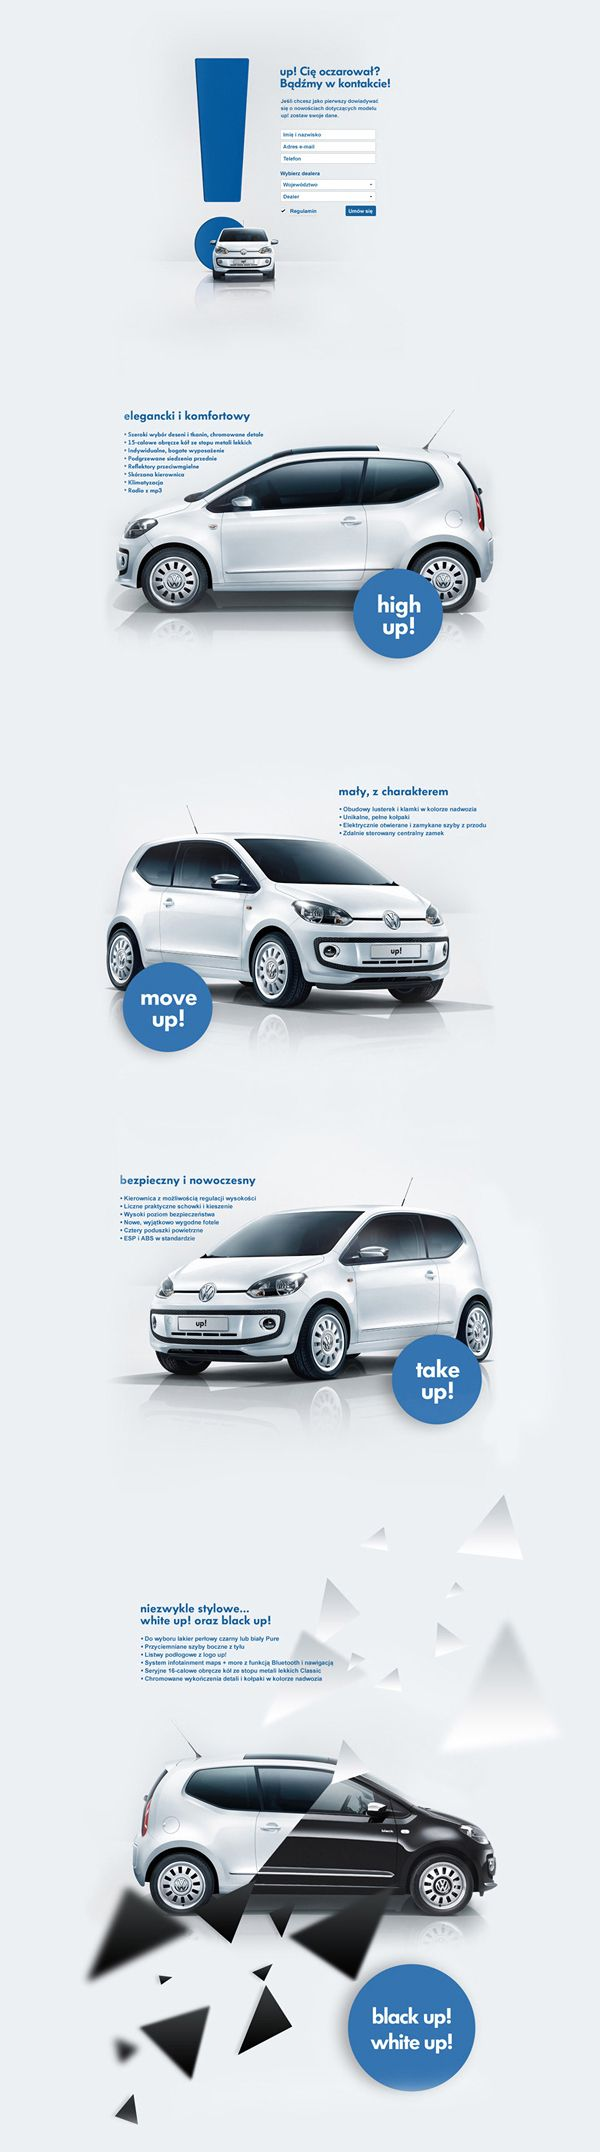 Volkswagen up! by Malgorzata Studzinska, via Behance